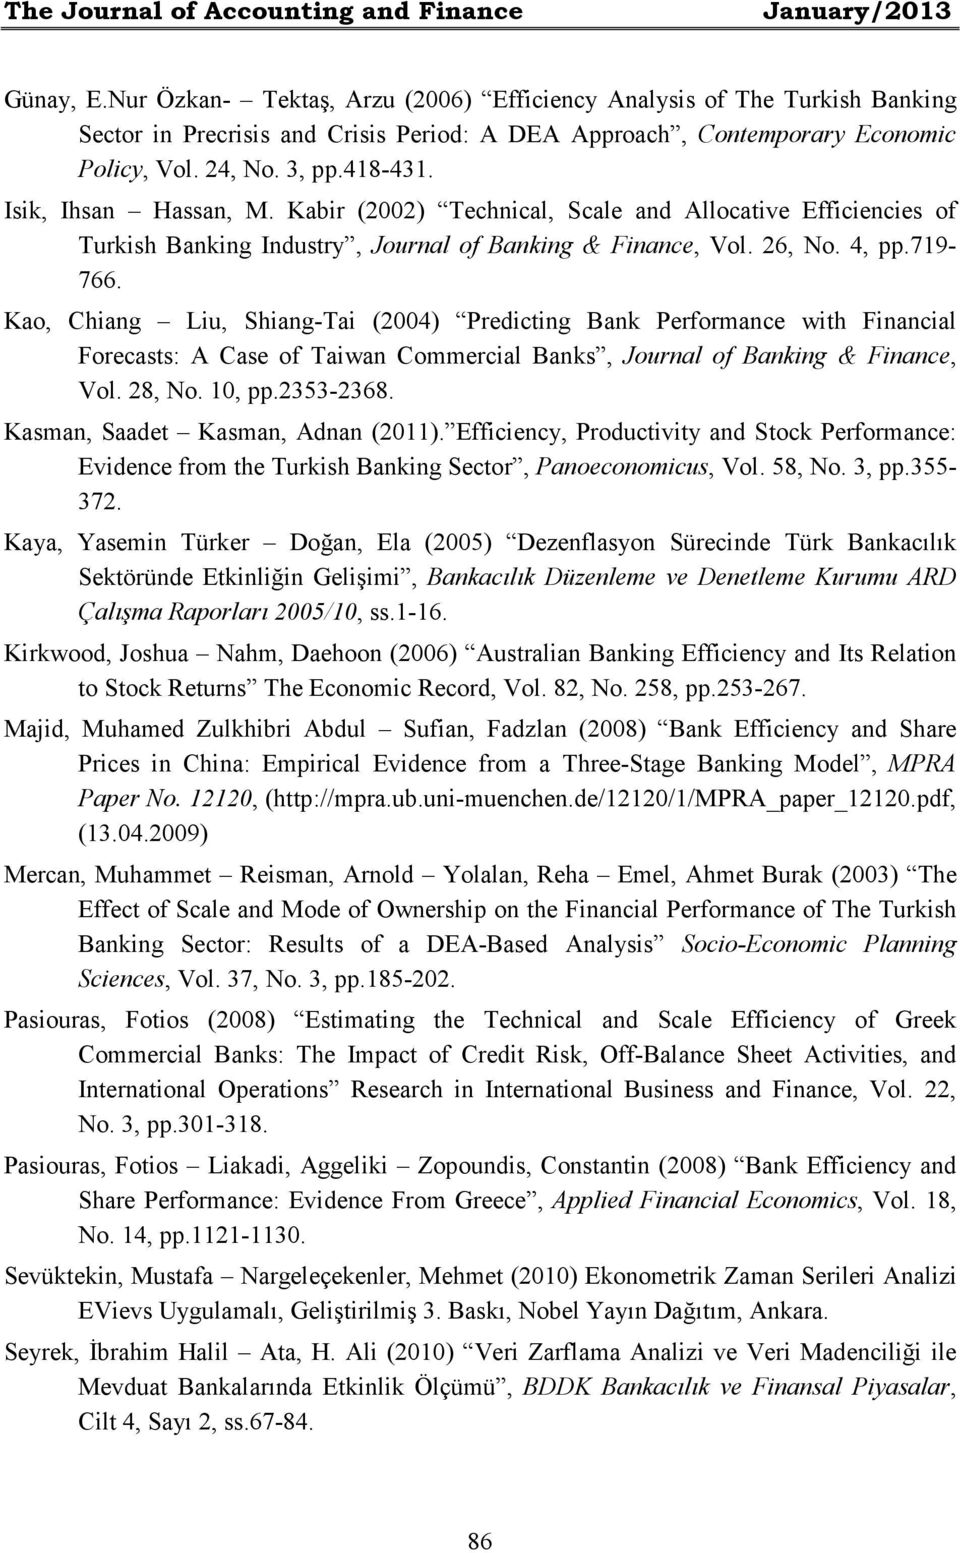 Isik, Ihsan Hassan, M. Kabir (2002) Technical, Scale and Allocative Efficiencies of Turkish Banking Industry, Journal of Banking & Finance, Vol. 26, No. 4, pp.719-766.